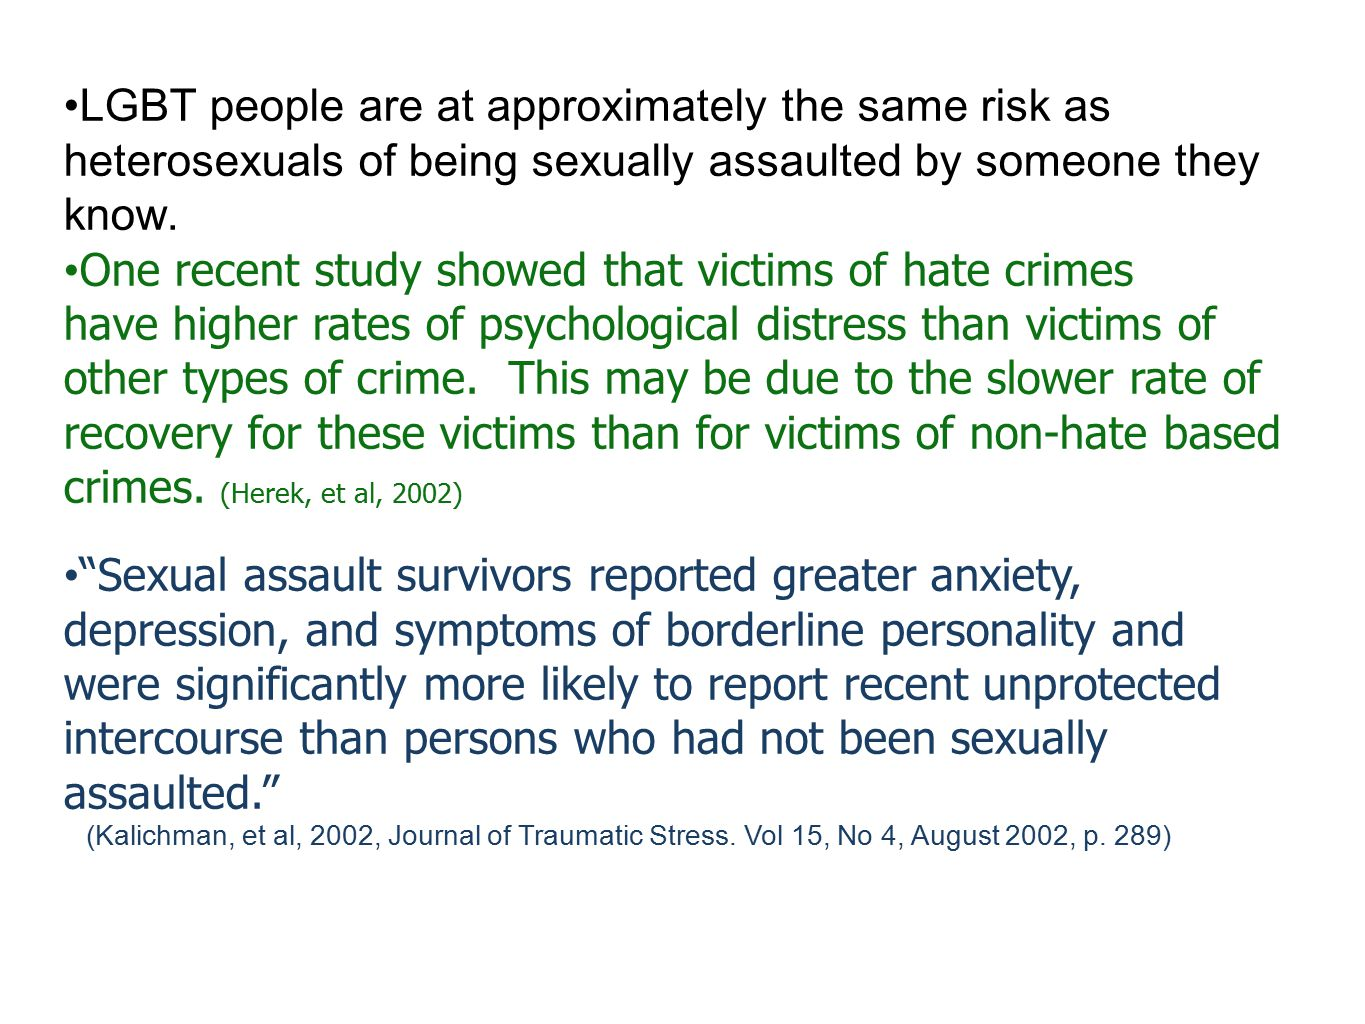 LGBT people are at approximately the same risk as heterosexuals of being sexually assaulted by someone they know.